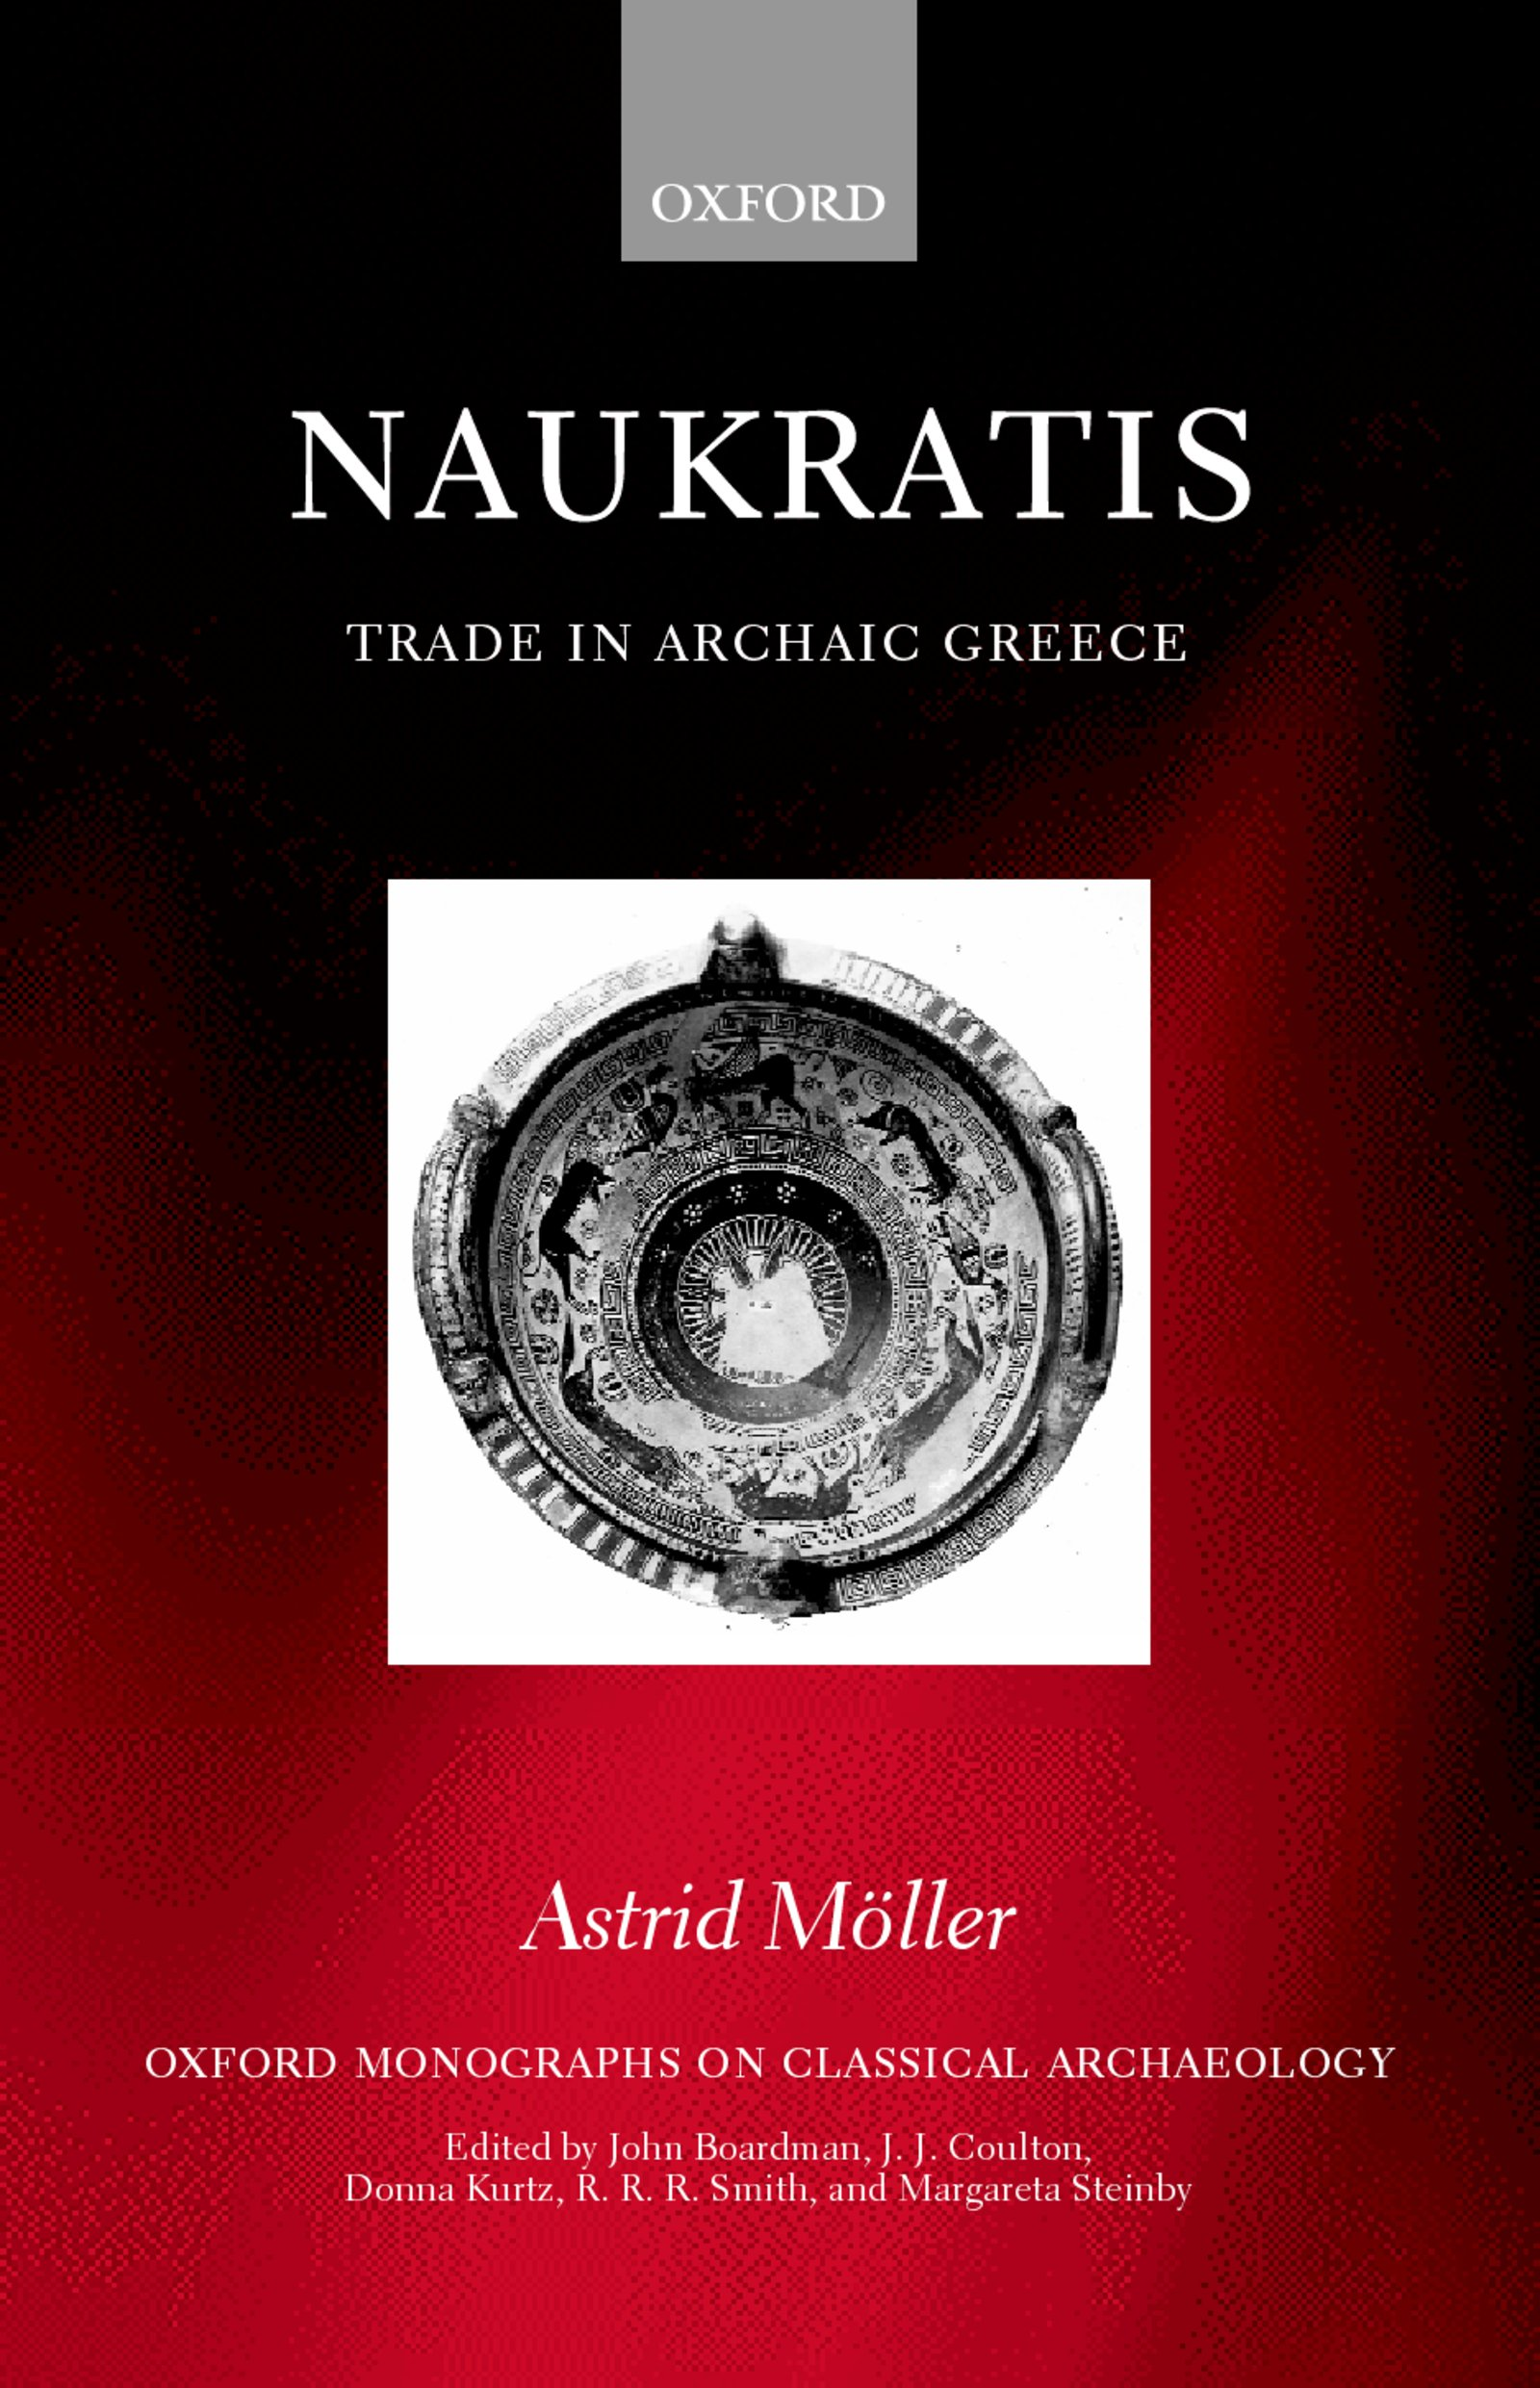 NaukratisTrade in Archaic Greece